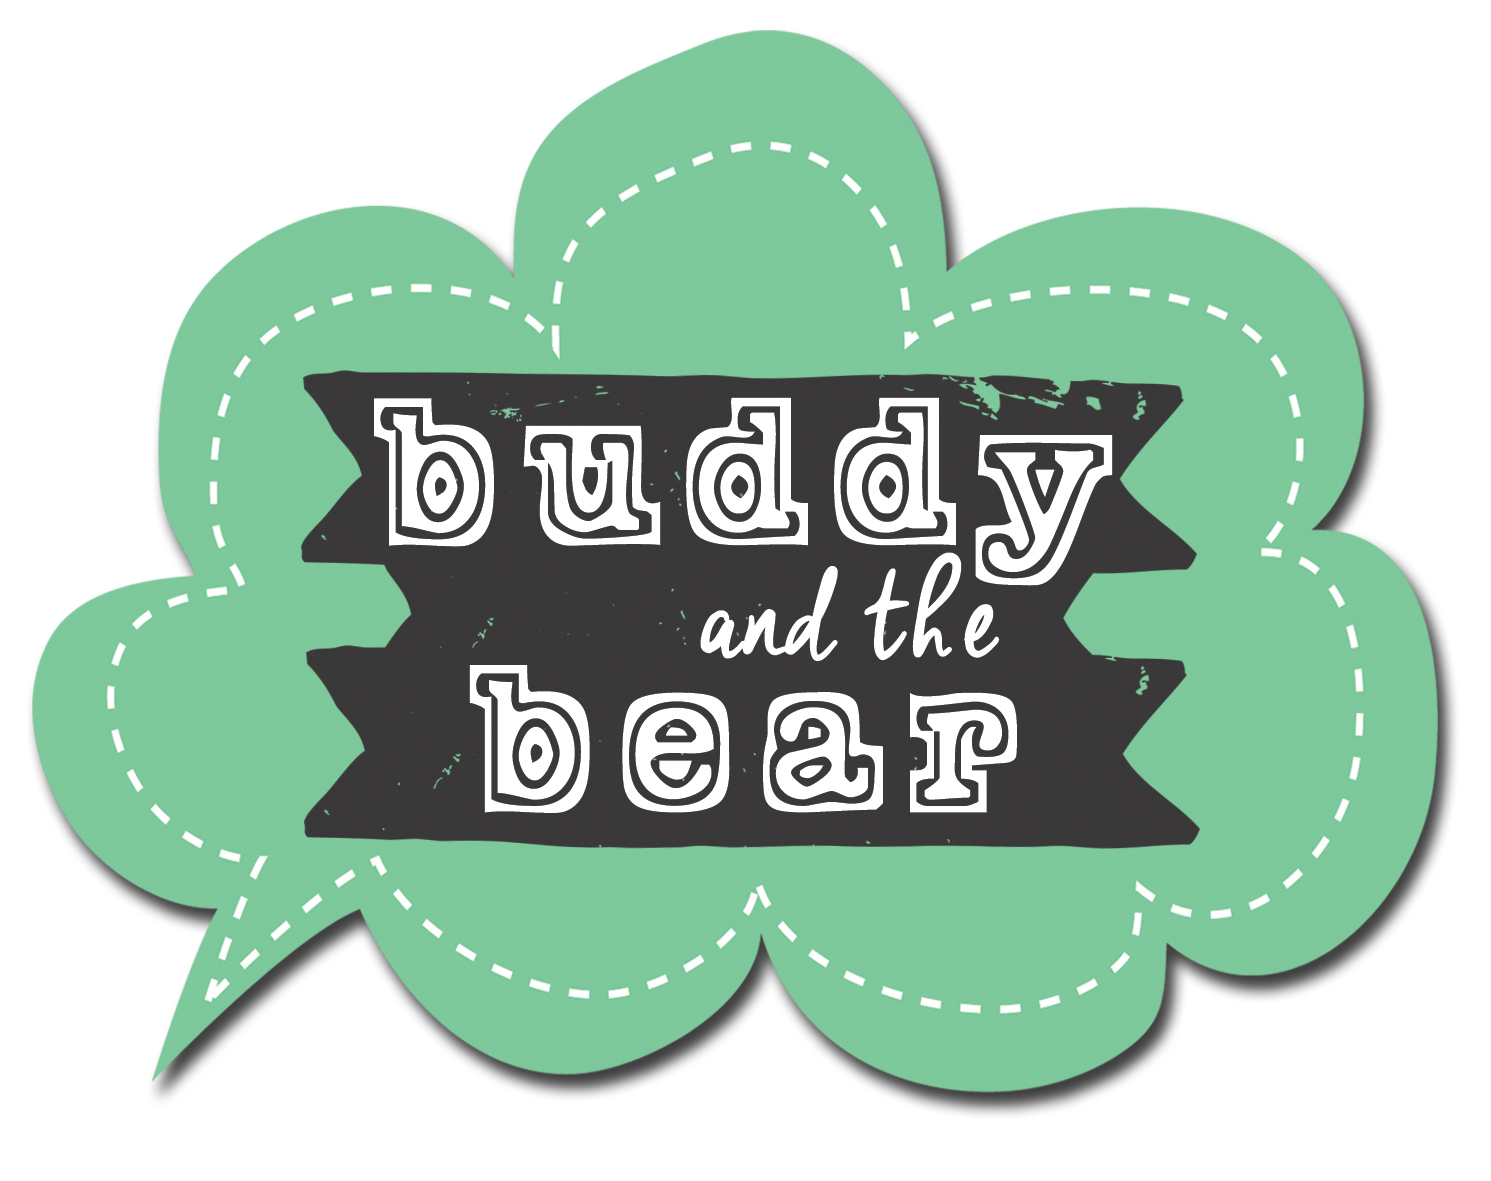 Client: Babywear clothing and accessories company  Buddy and the Bear